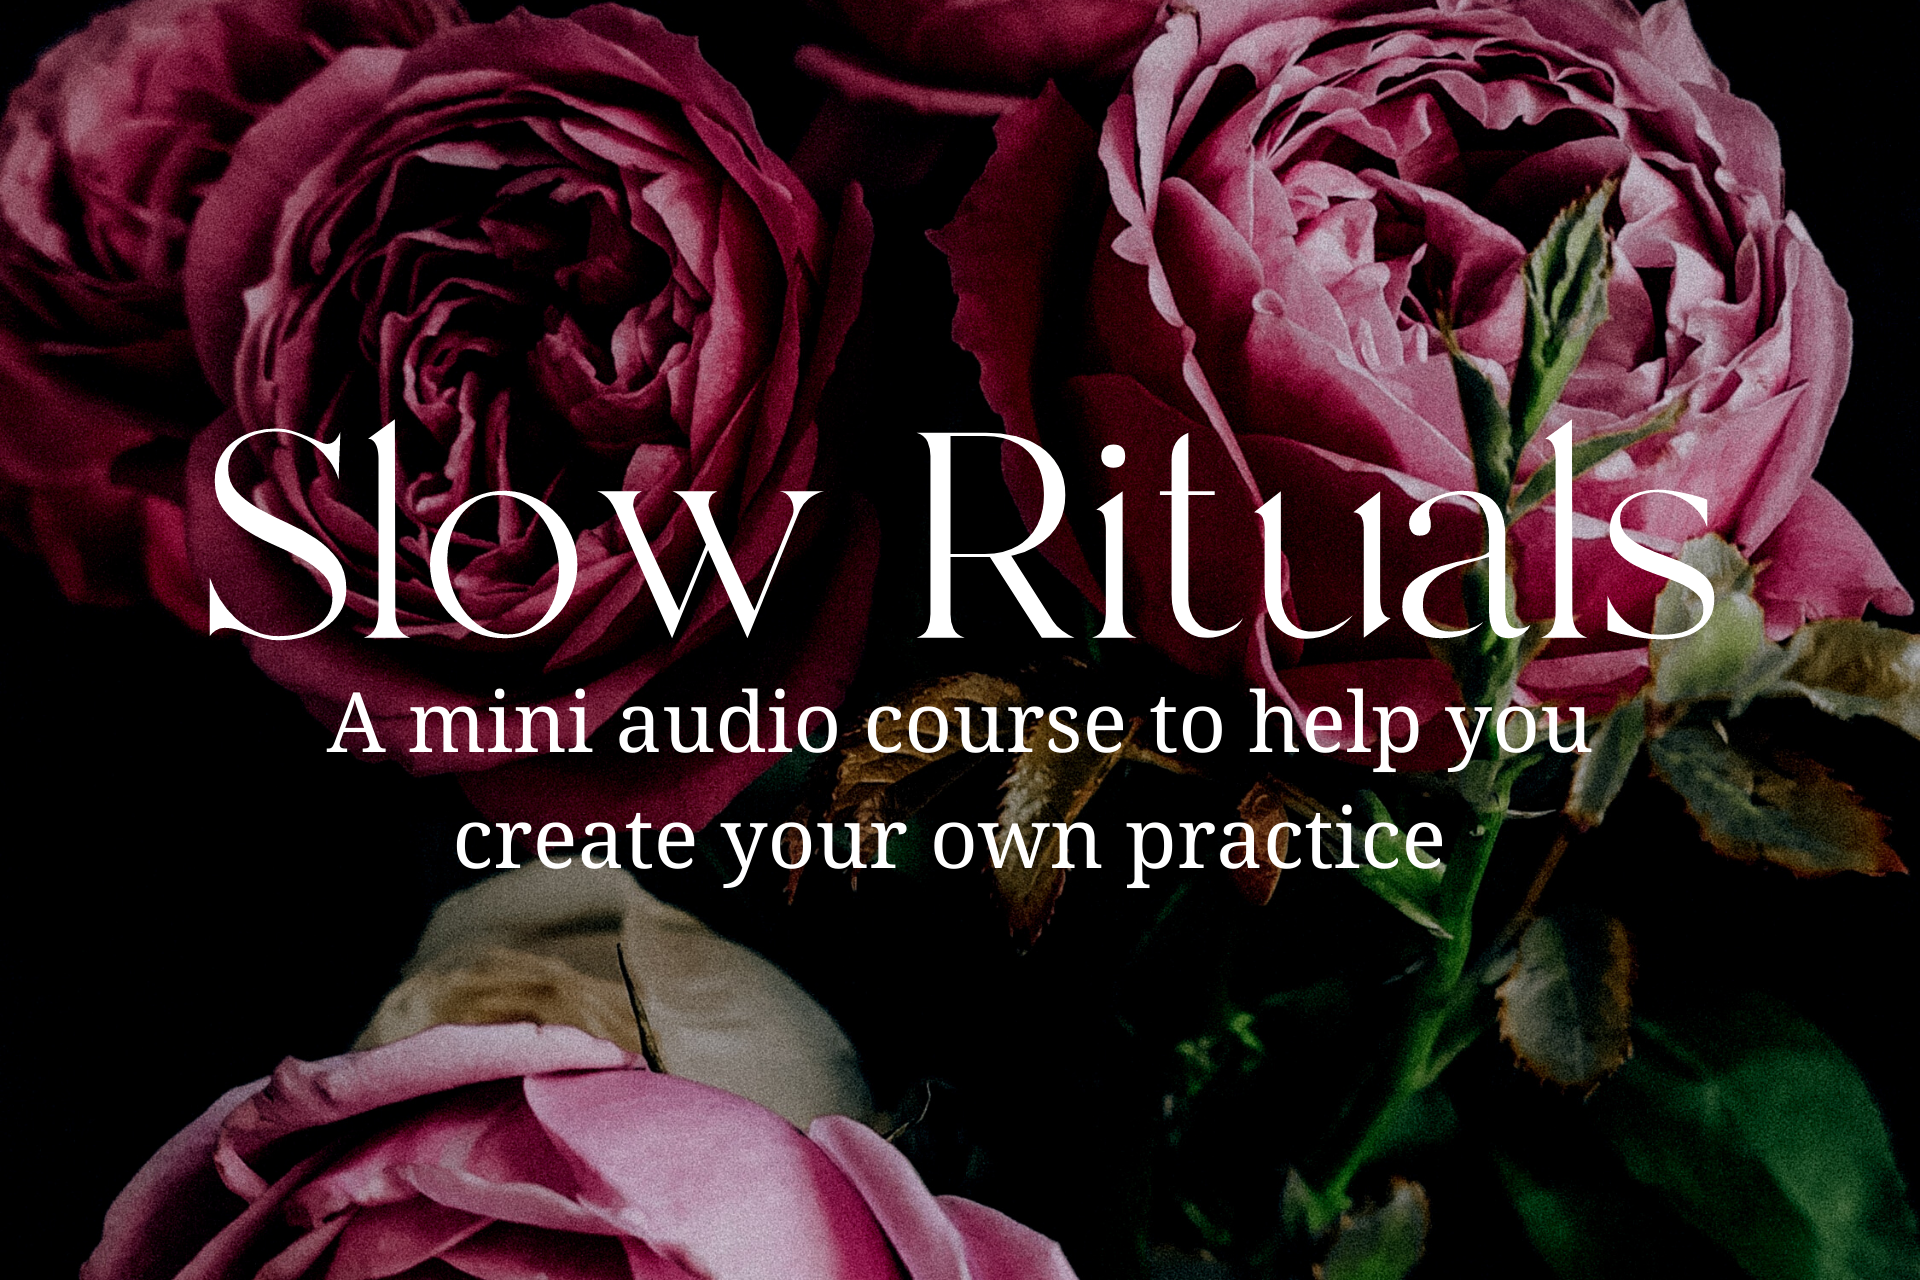 Love rituals and want more in your life?